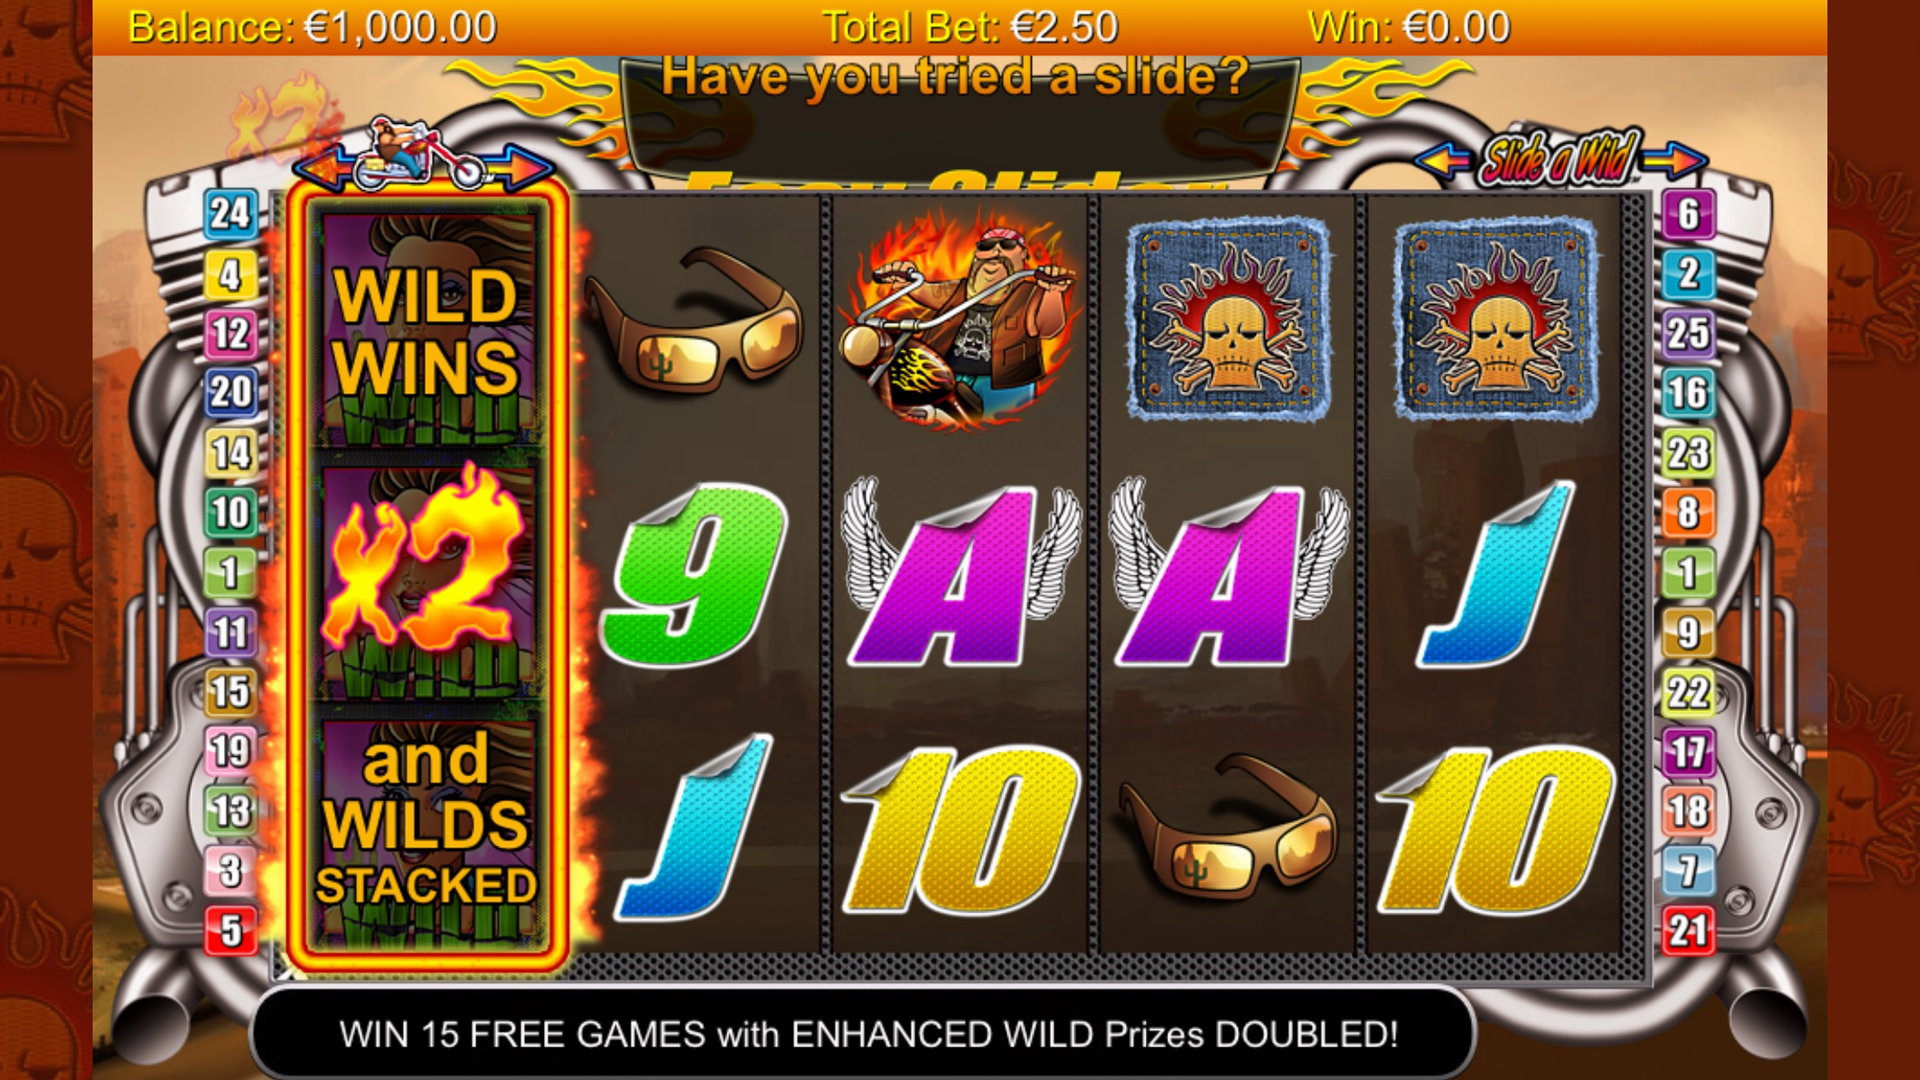 Copy Cats Slot Machine - Play Online for Free Instantly